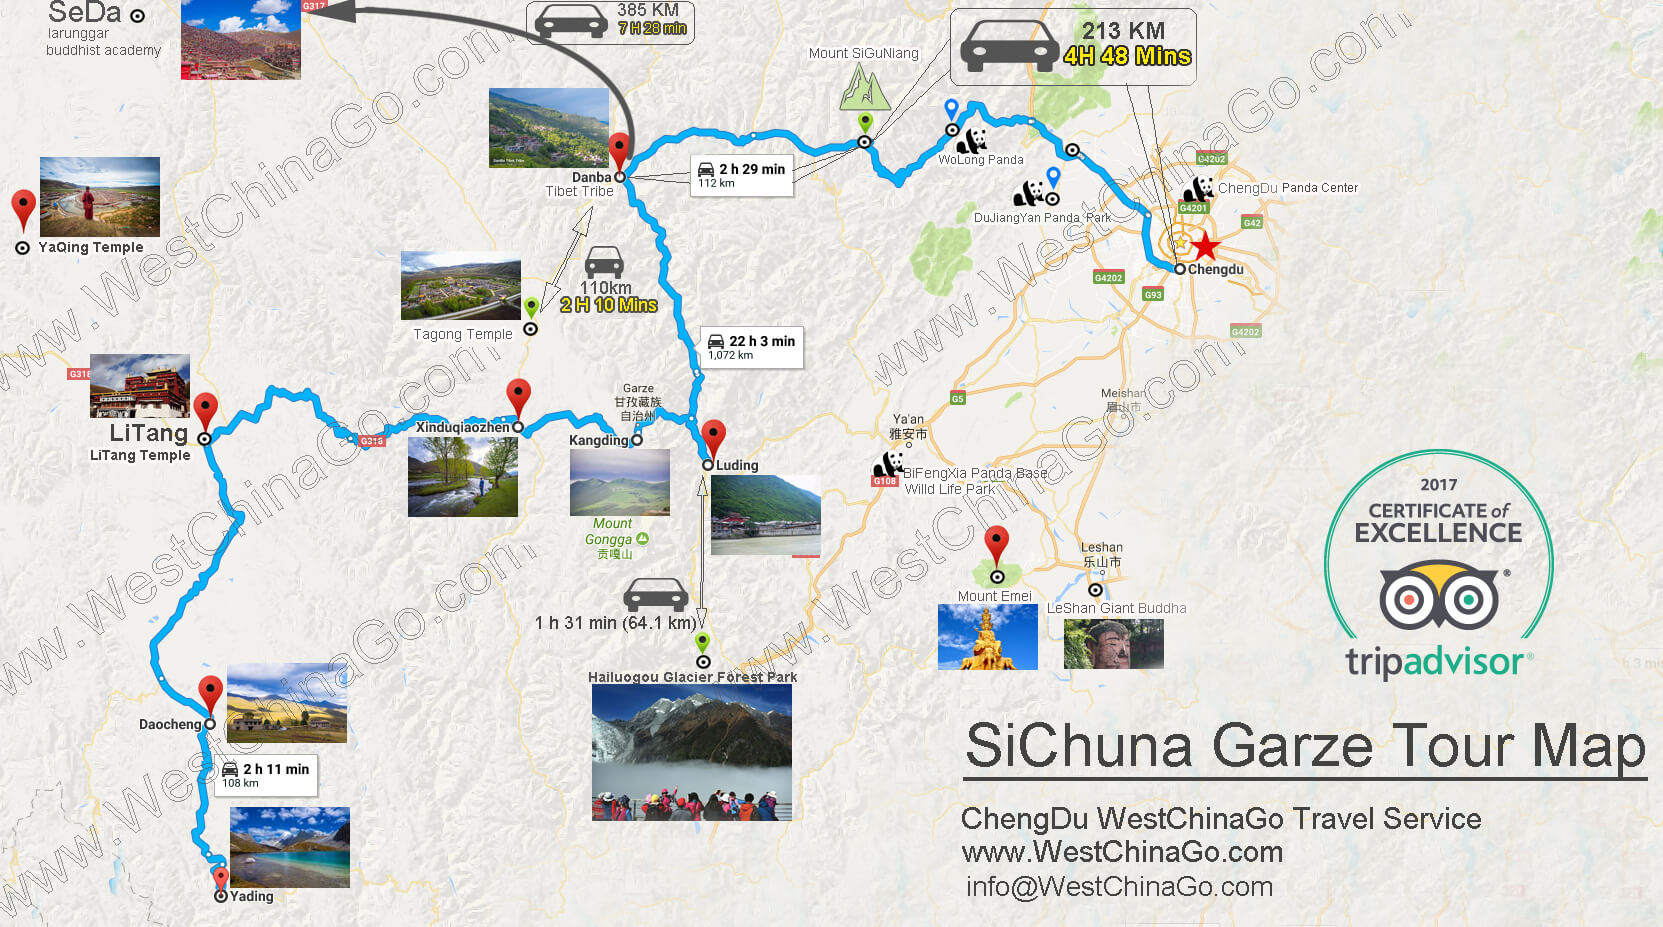 From ChengDu to garze tour map